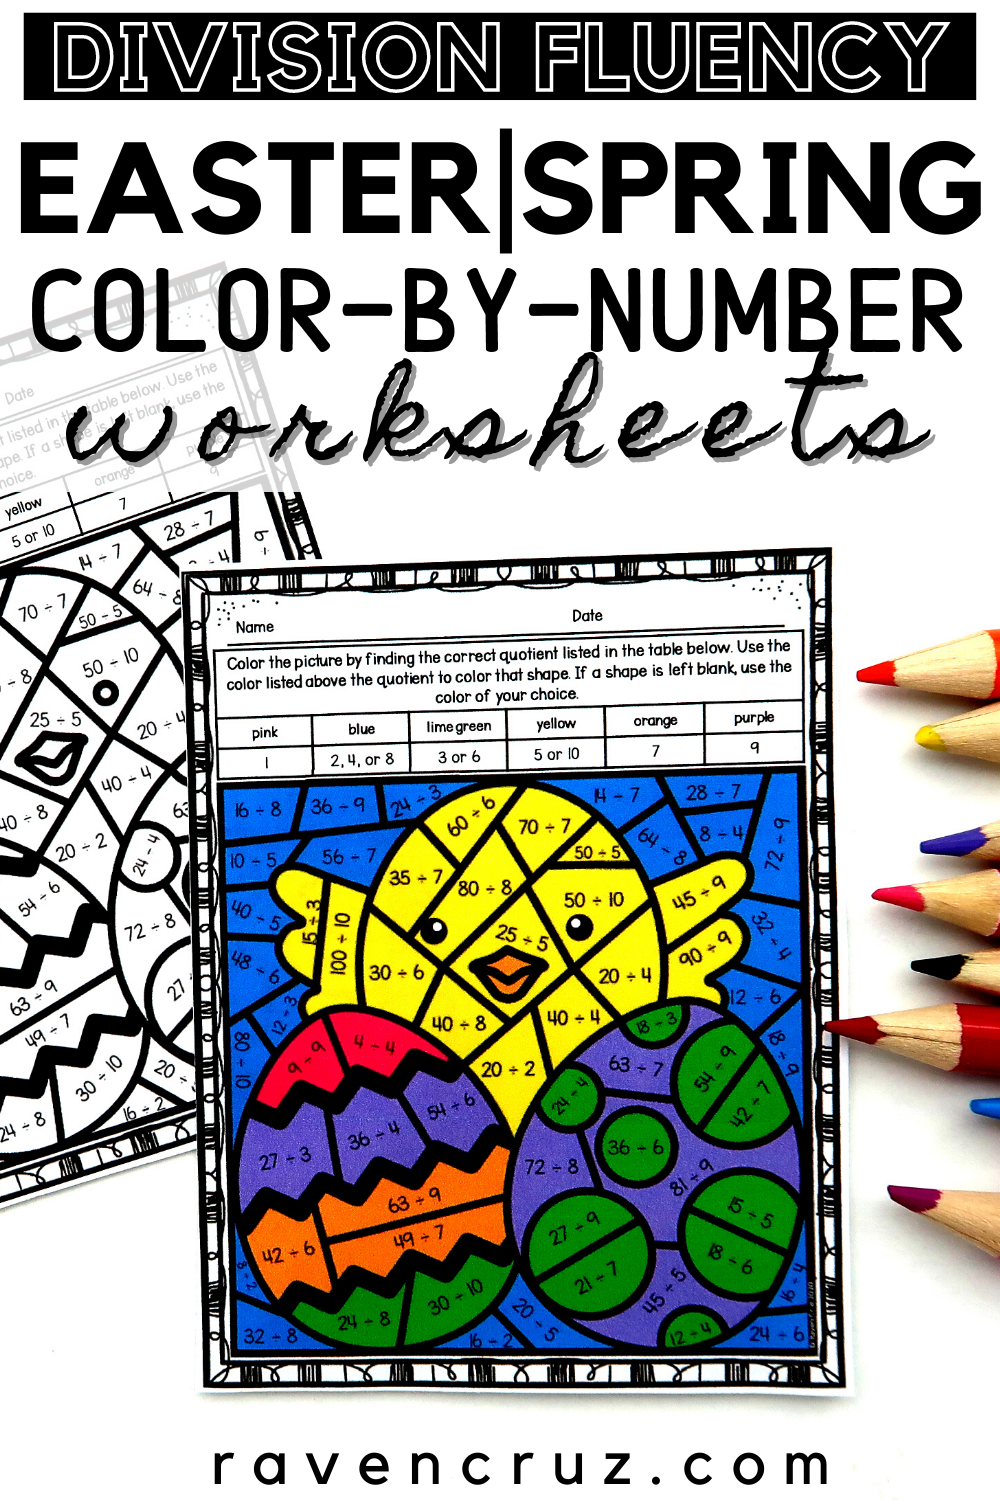 Easter Math Worksheets For Division In 2021 Easter Math Worksheets Easter Math 4th Grade Math Worksheets [ 1500 x 1000 Pixel ]